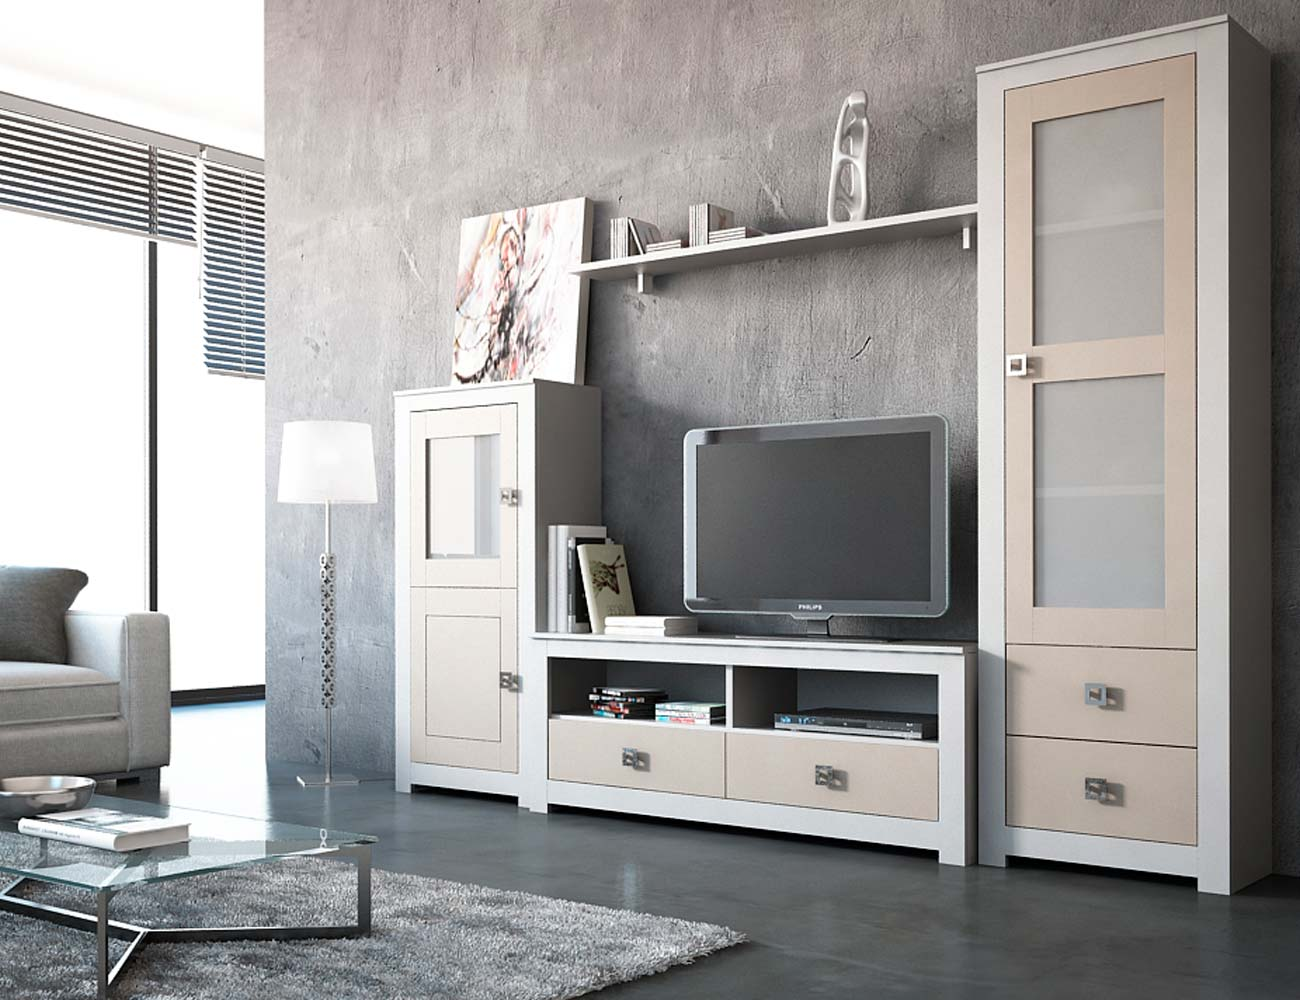 Mueble de sal n modular lacado en blanco con piedra en for Muebles de salon color blanco